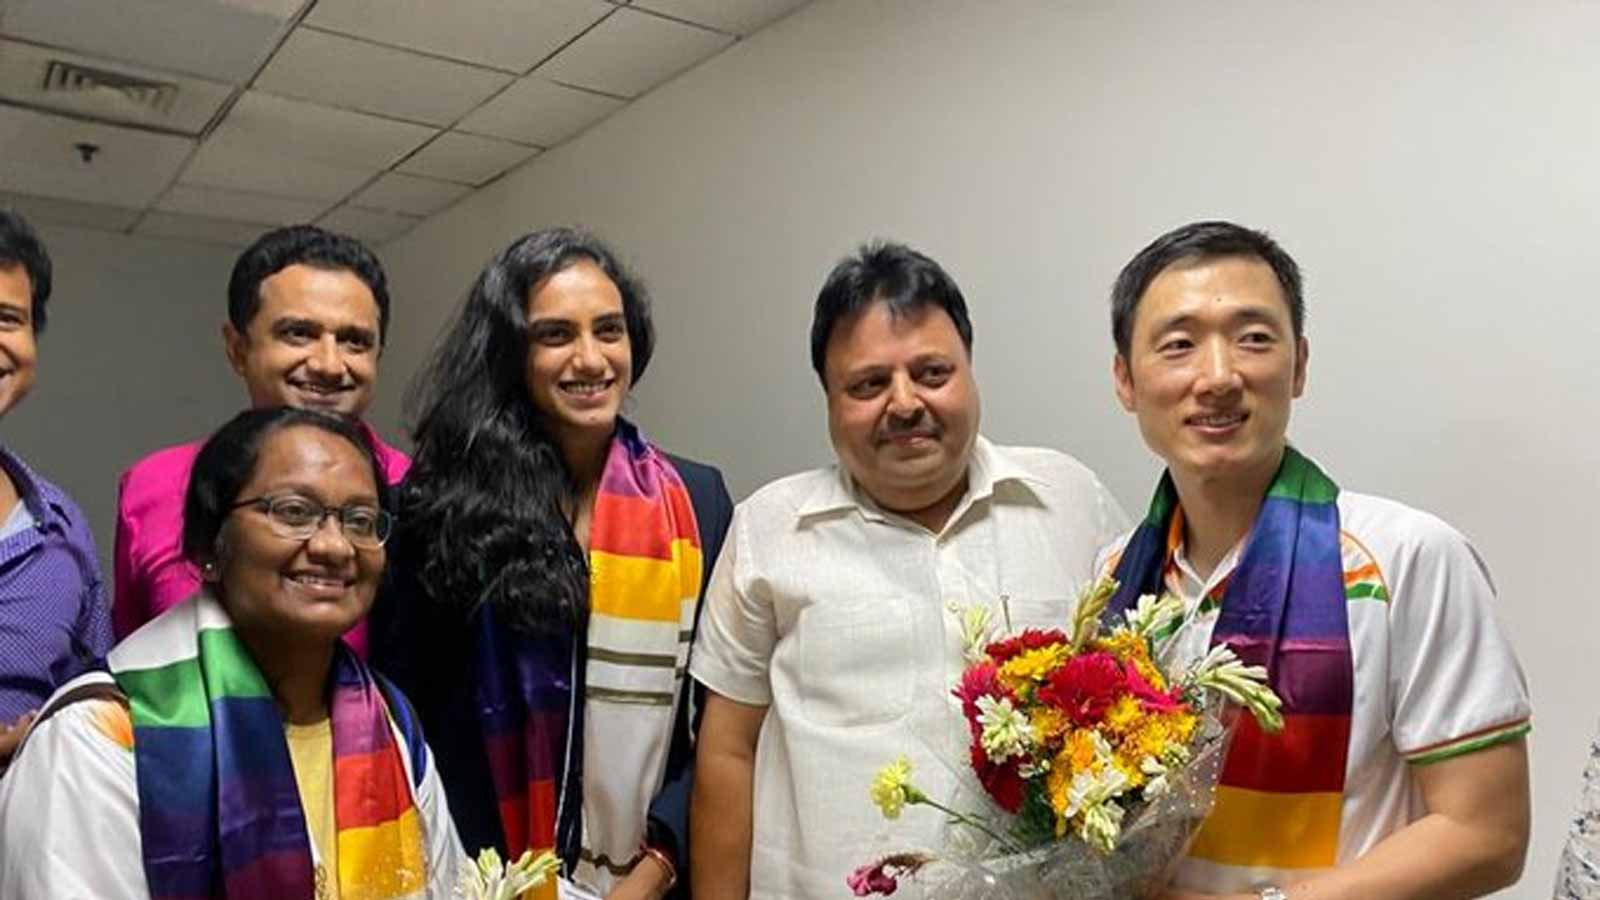 tokyo-olympics-happy-and-excited-says-medallist-pv-sindhu-on-her-return-to-india